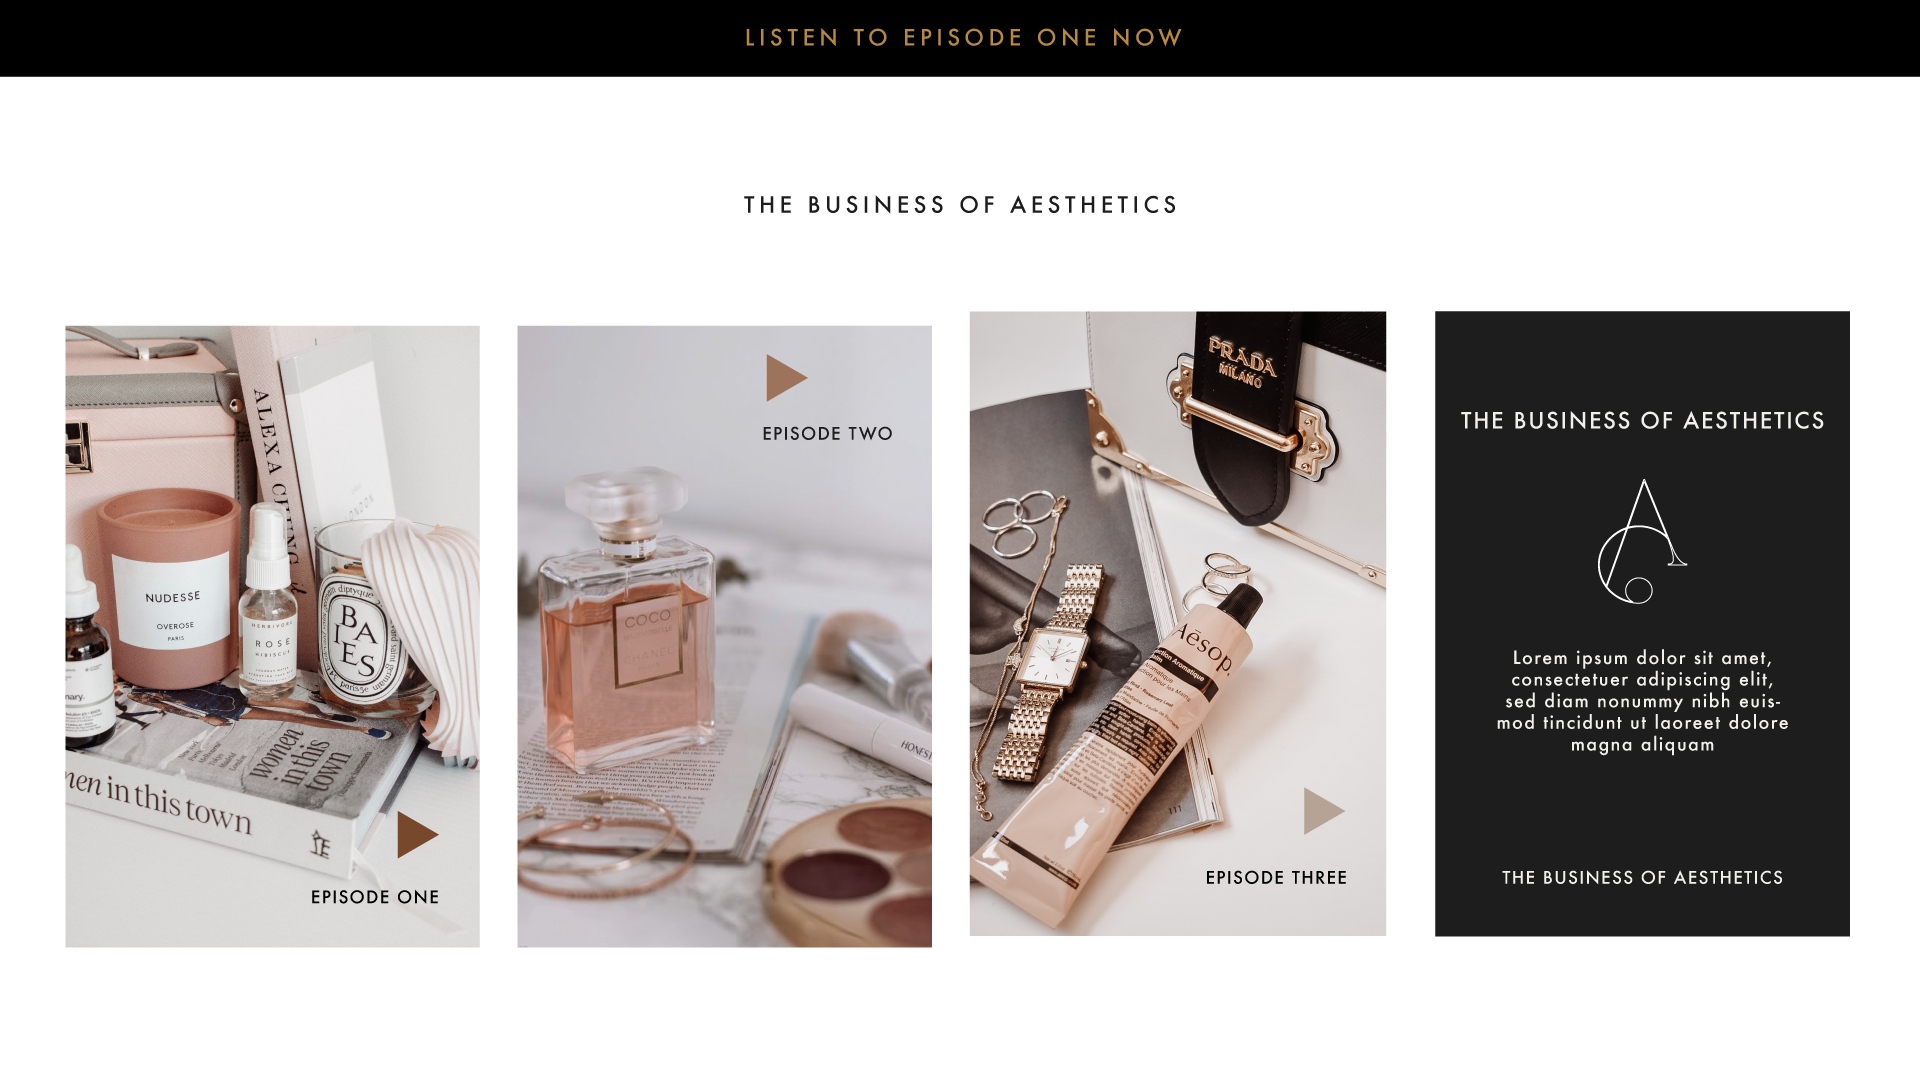 The Business of Asethetics Homepage